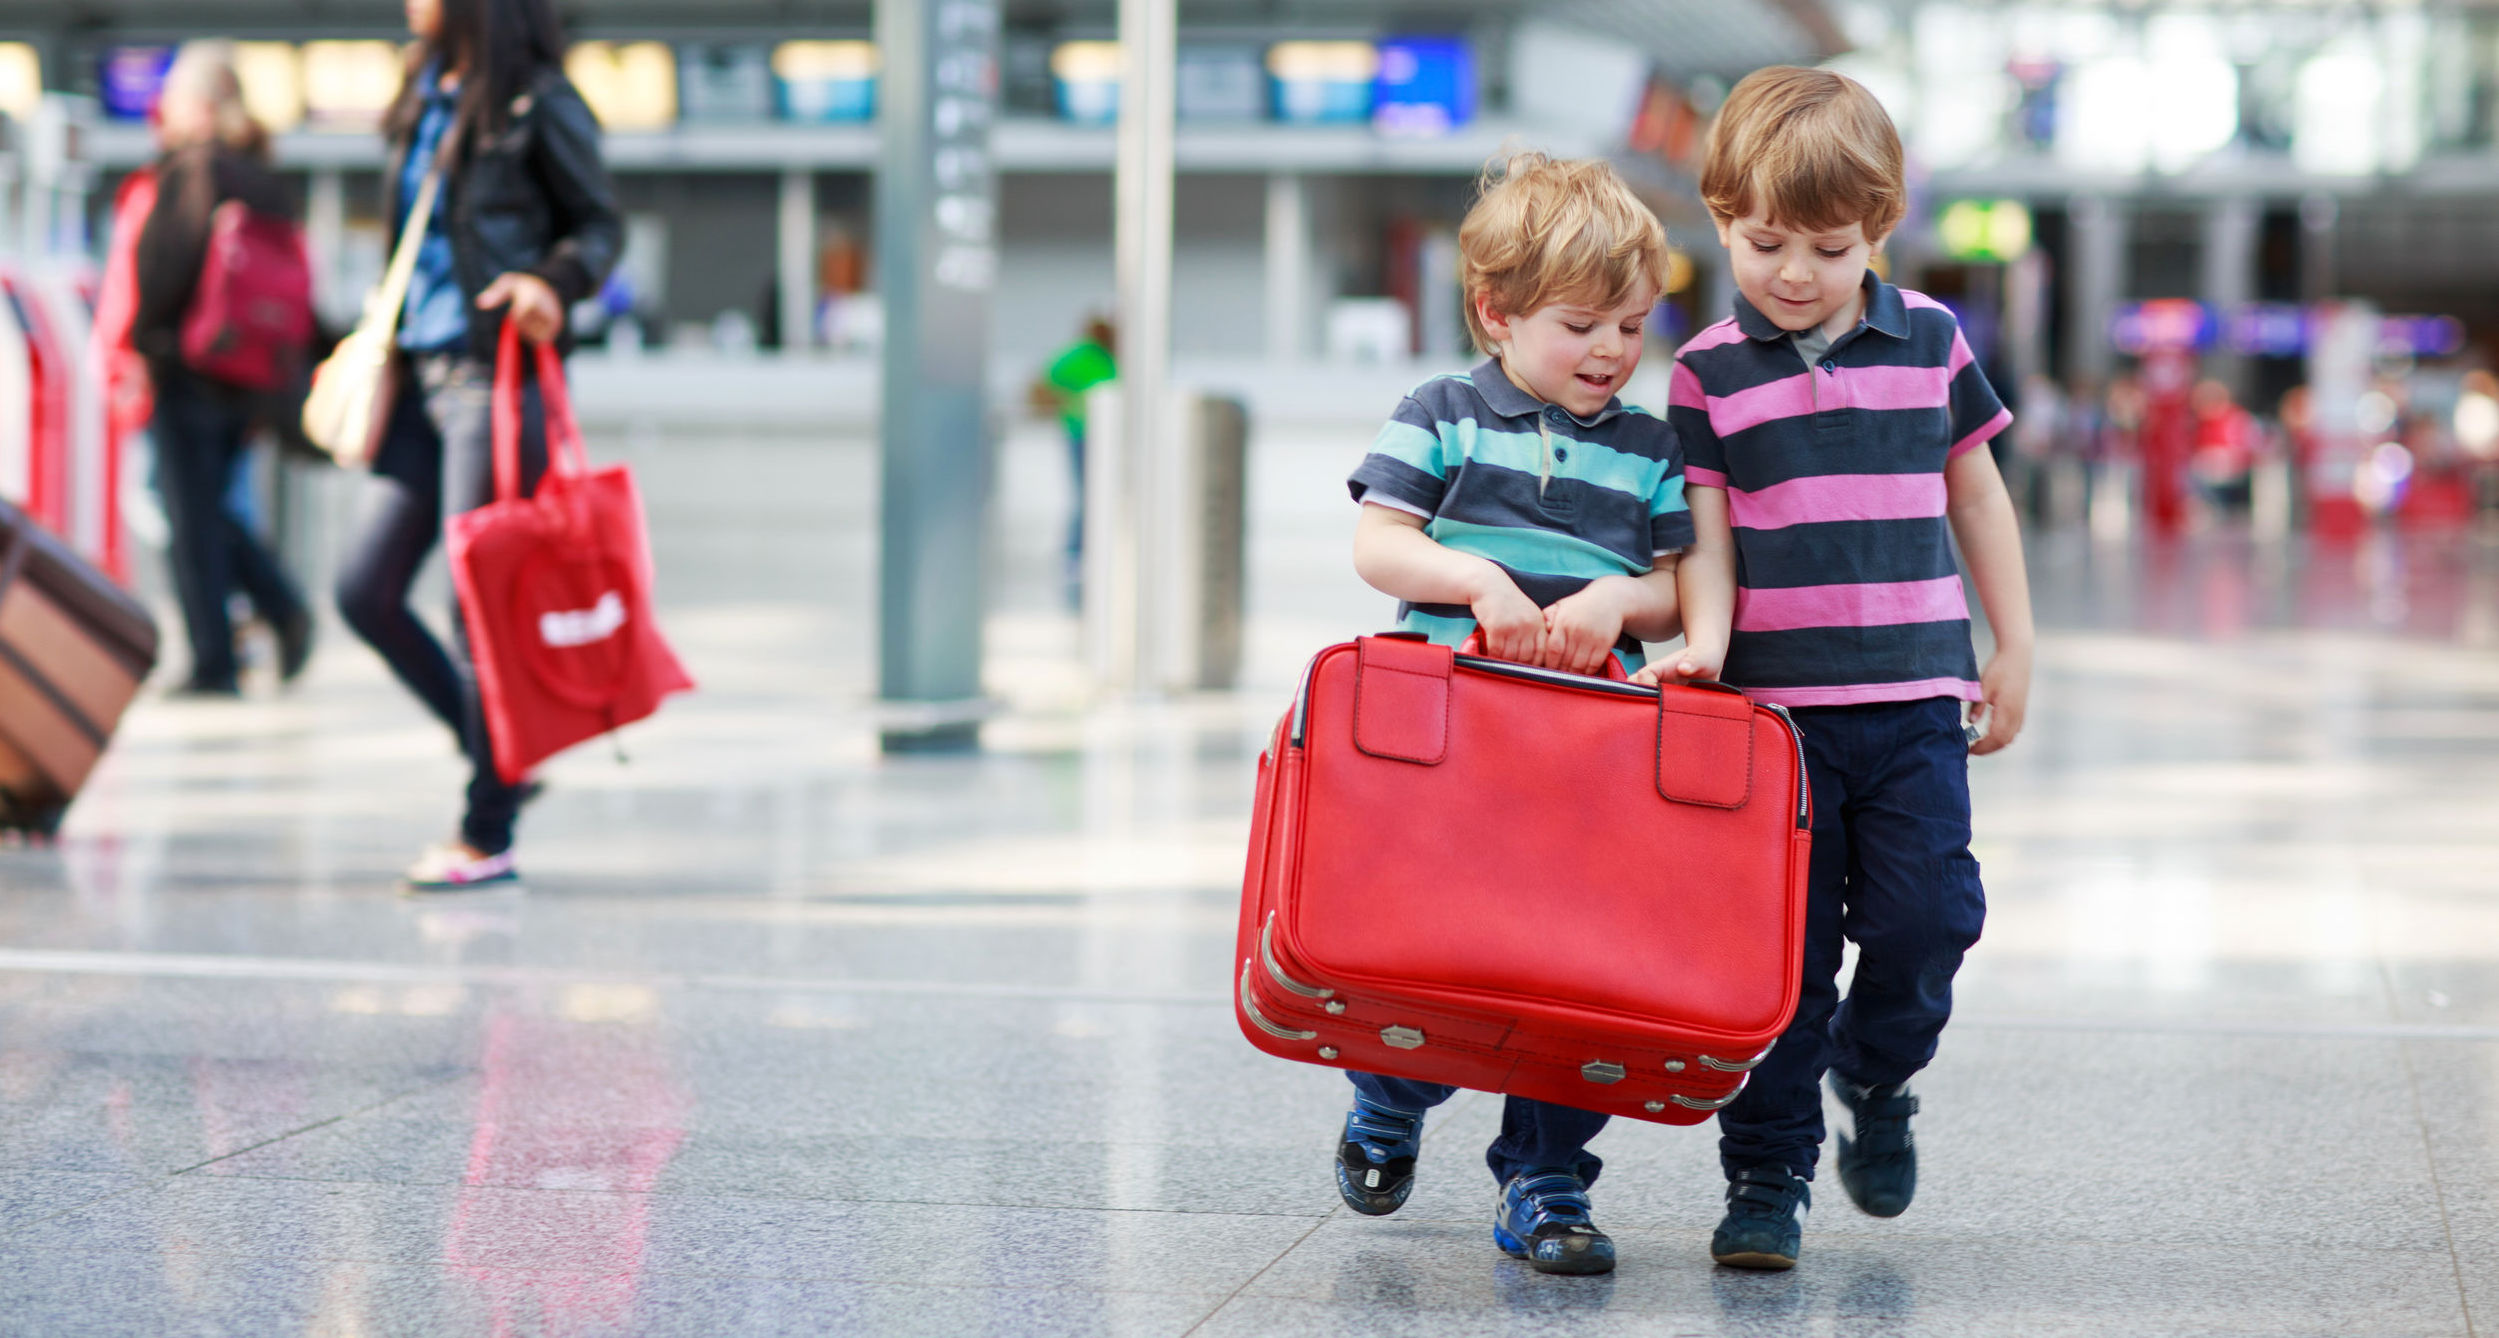 Brothers at Airport